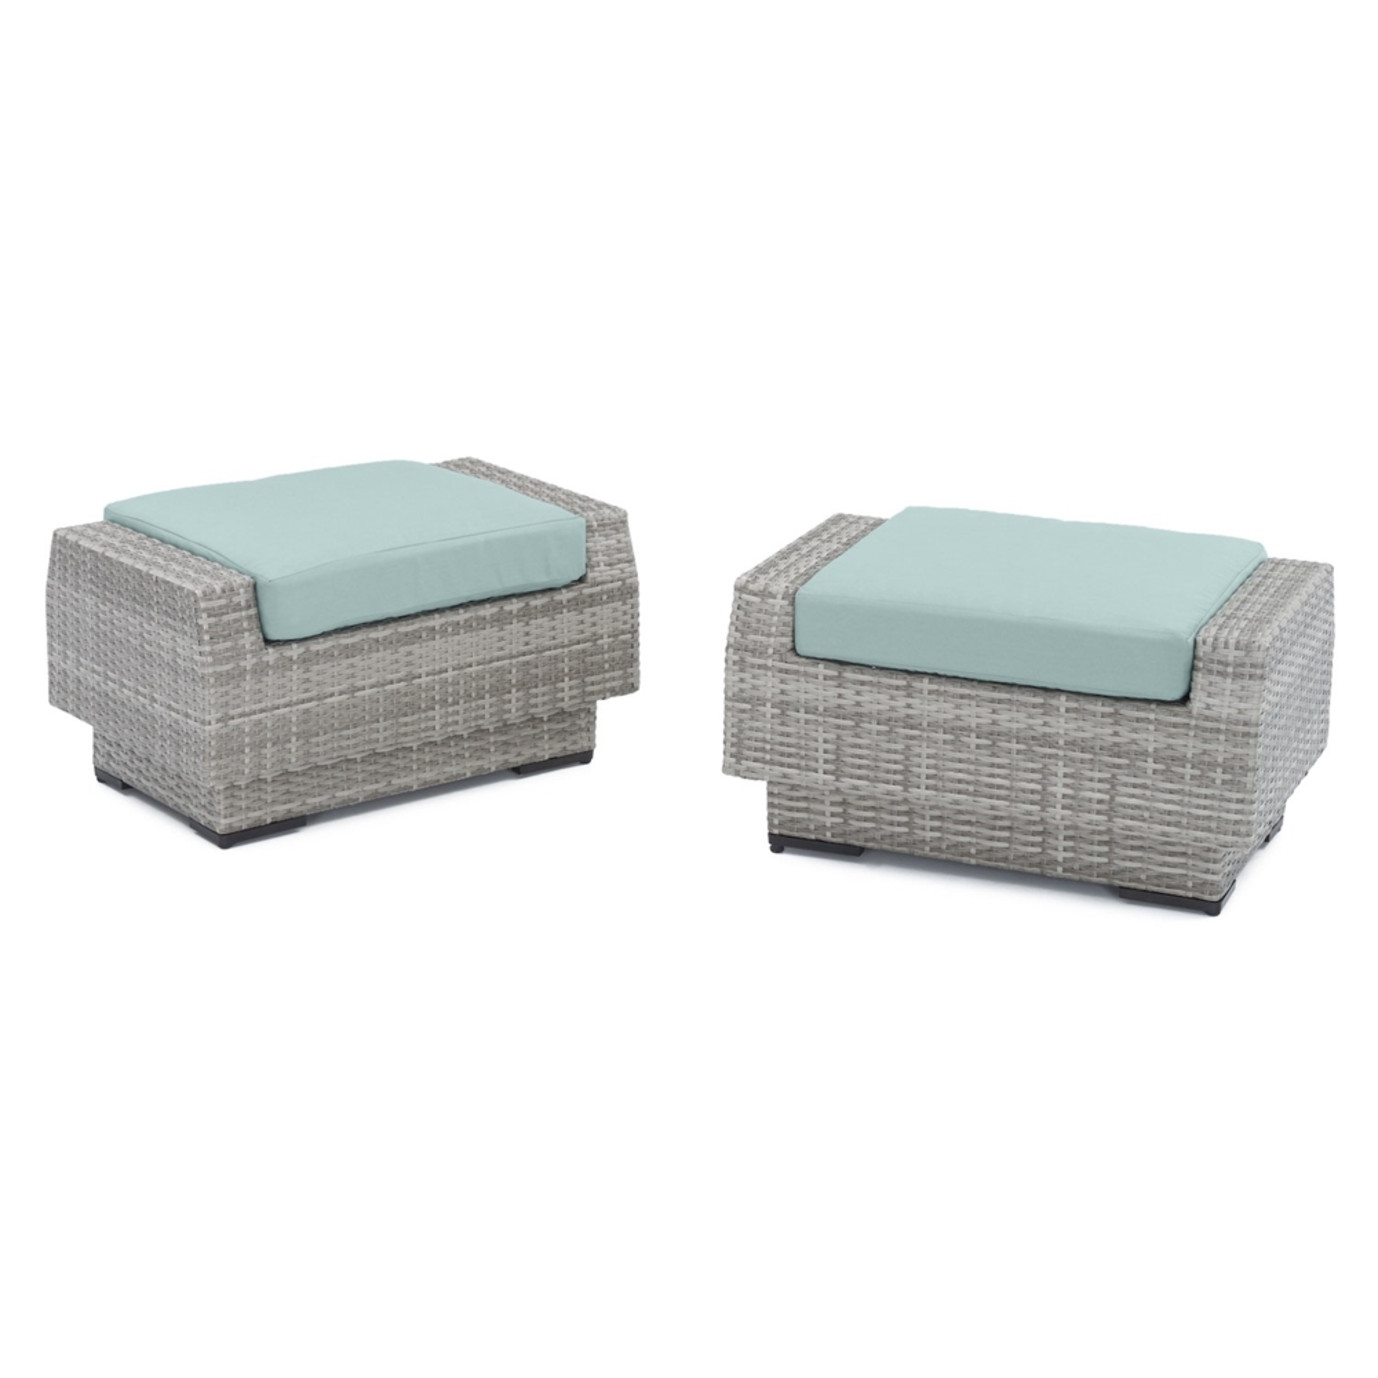 Cannes™ Club Ottomans - Bliss Blue